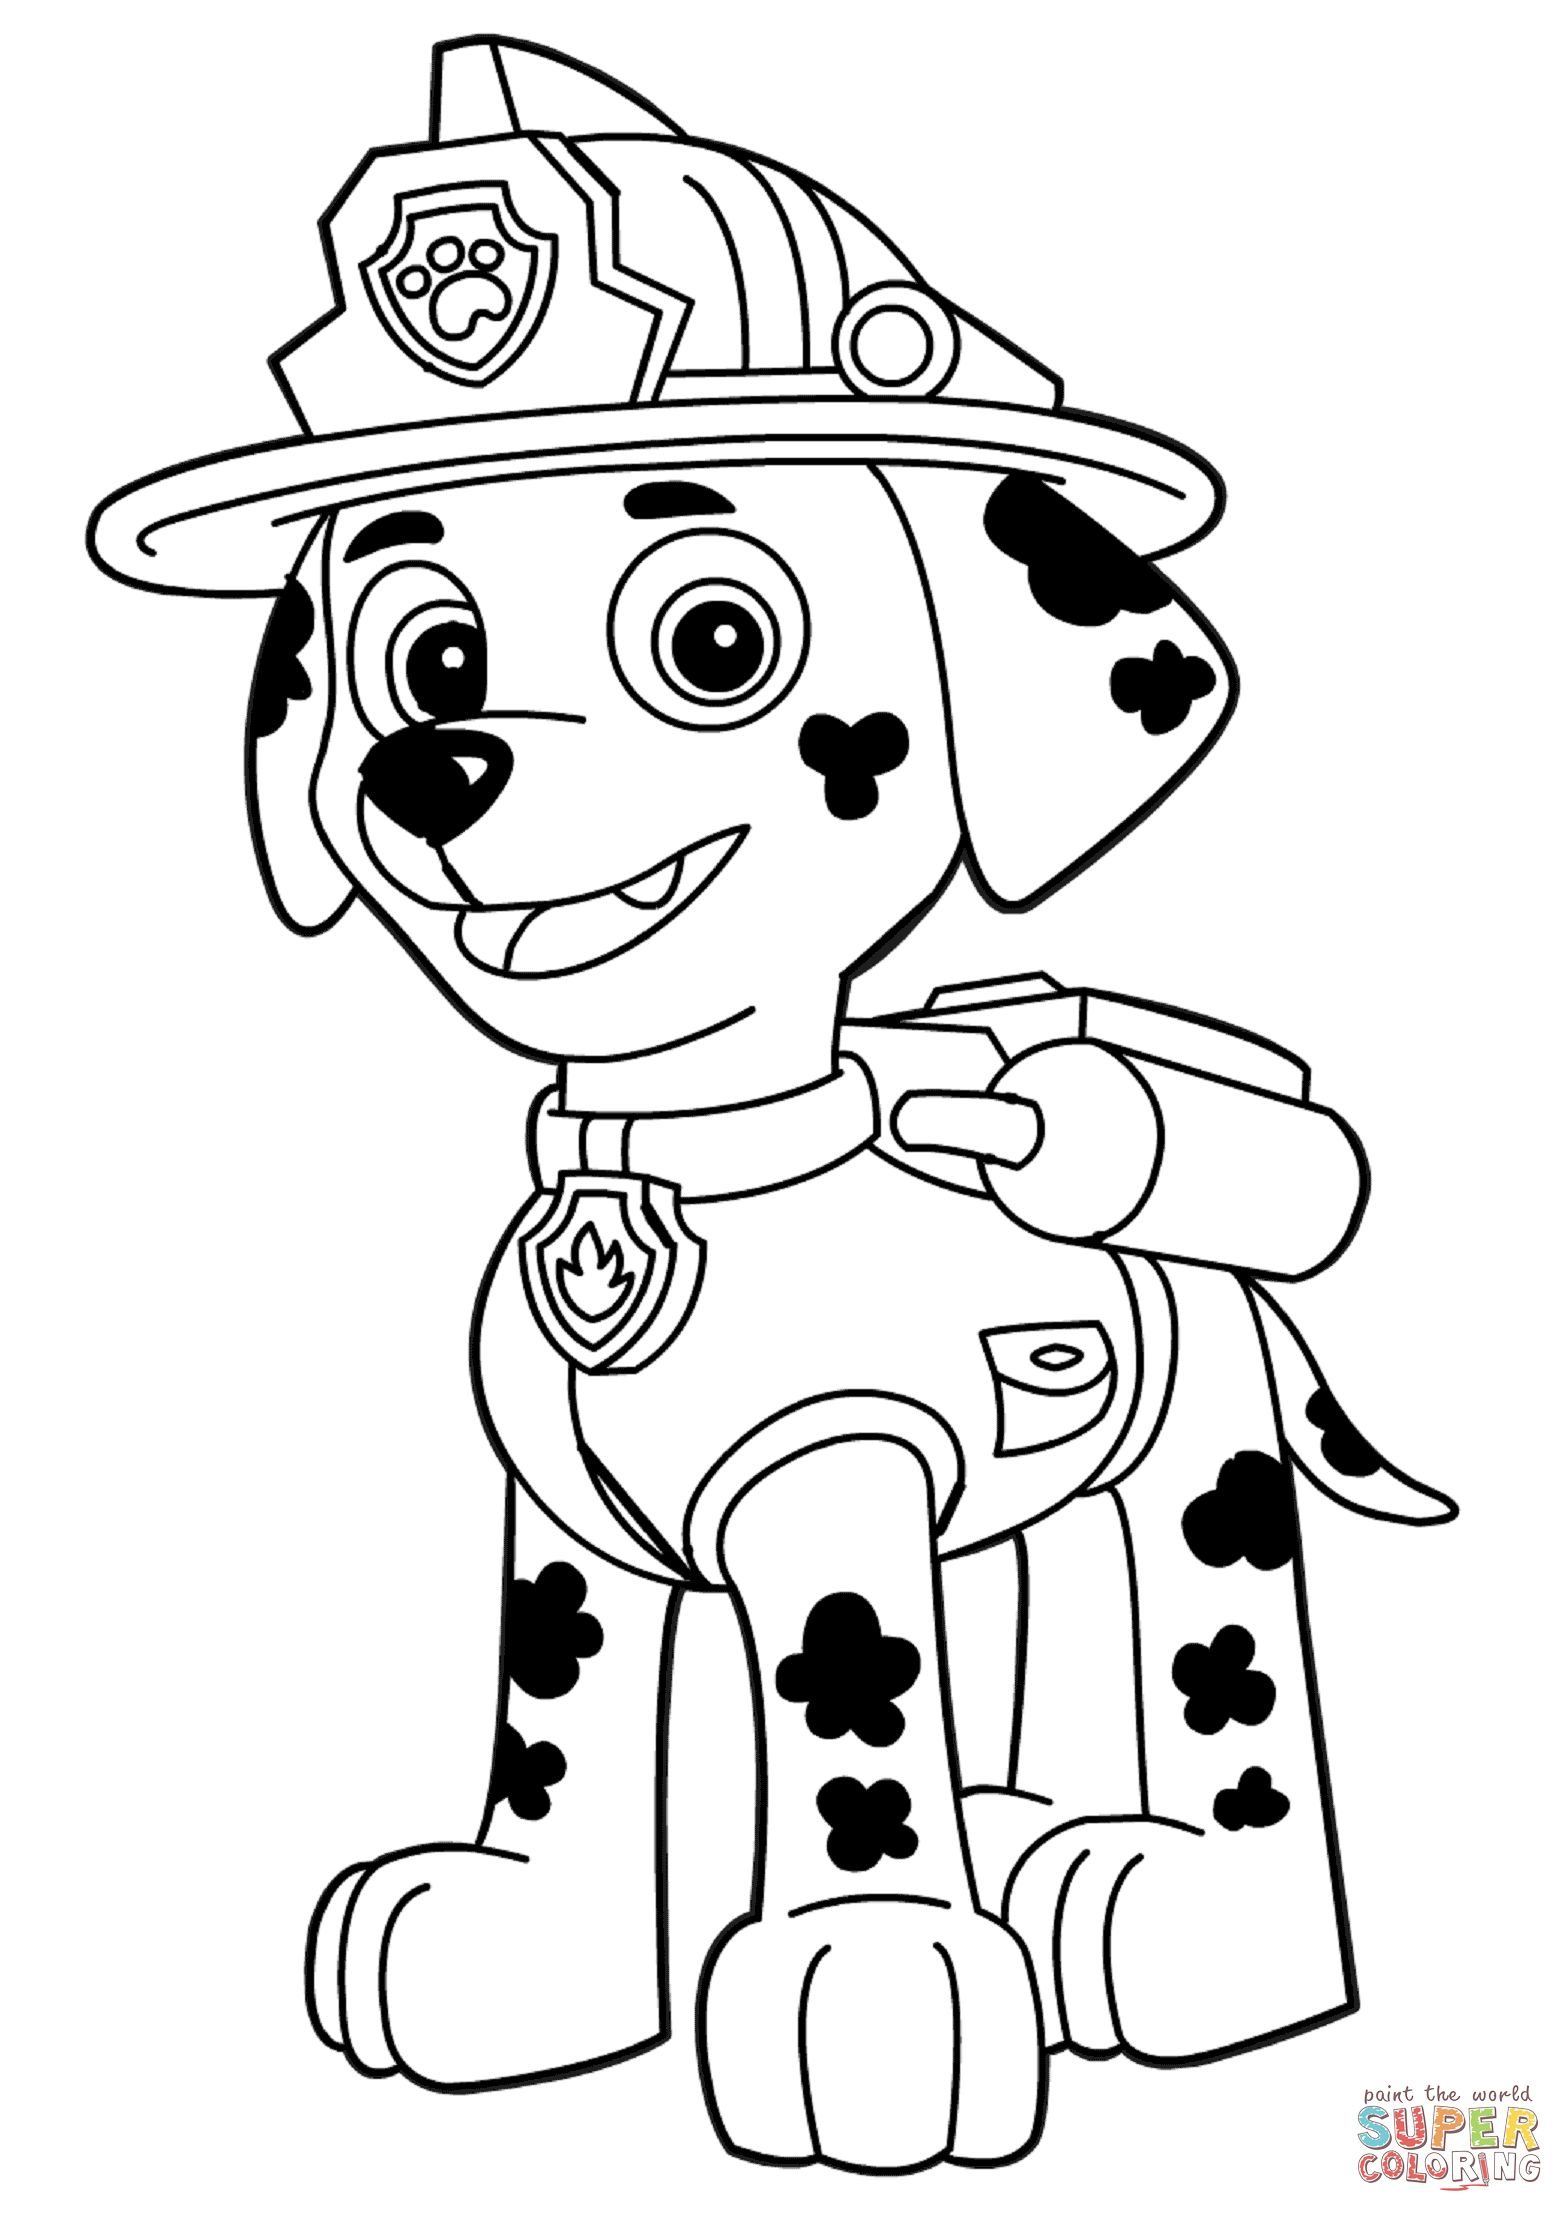 Image Result For Paw Patrol Clip Art Black And White.